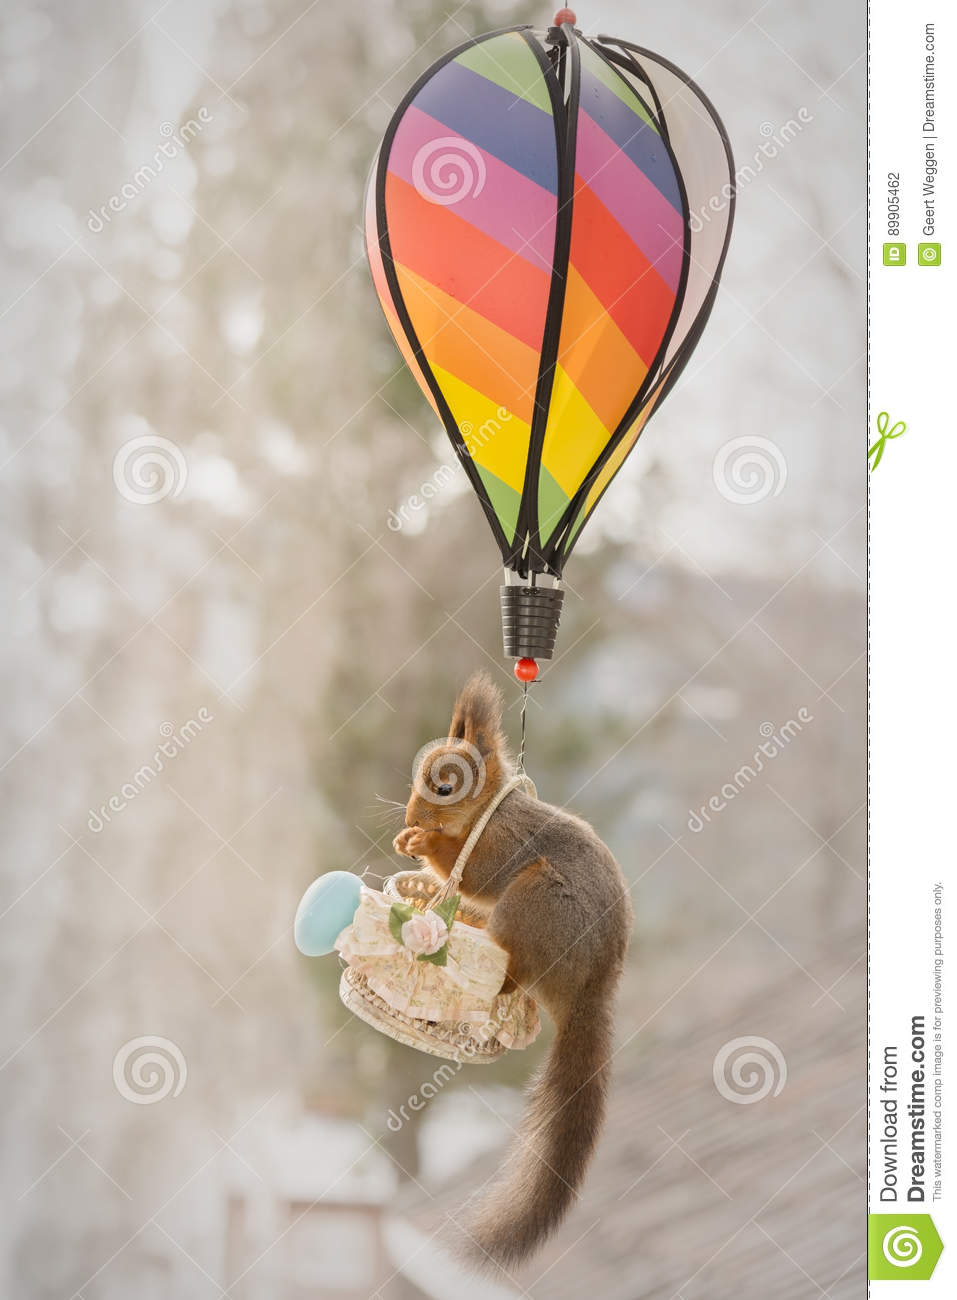 Flight With A Balloon RoyaltyFree Stock Image